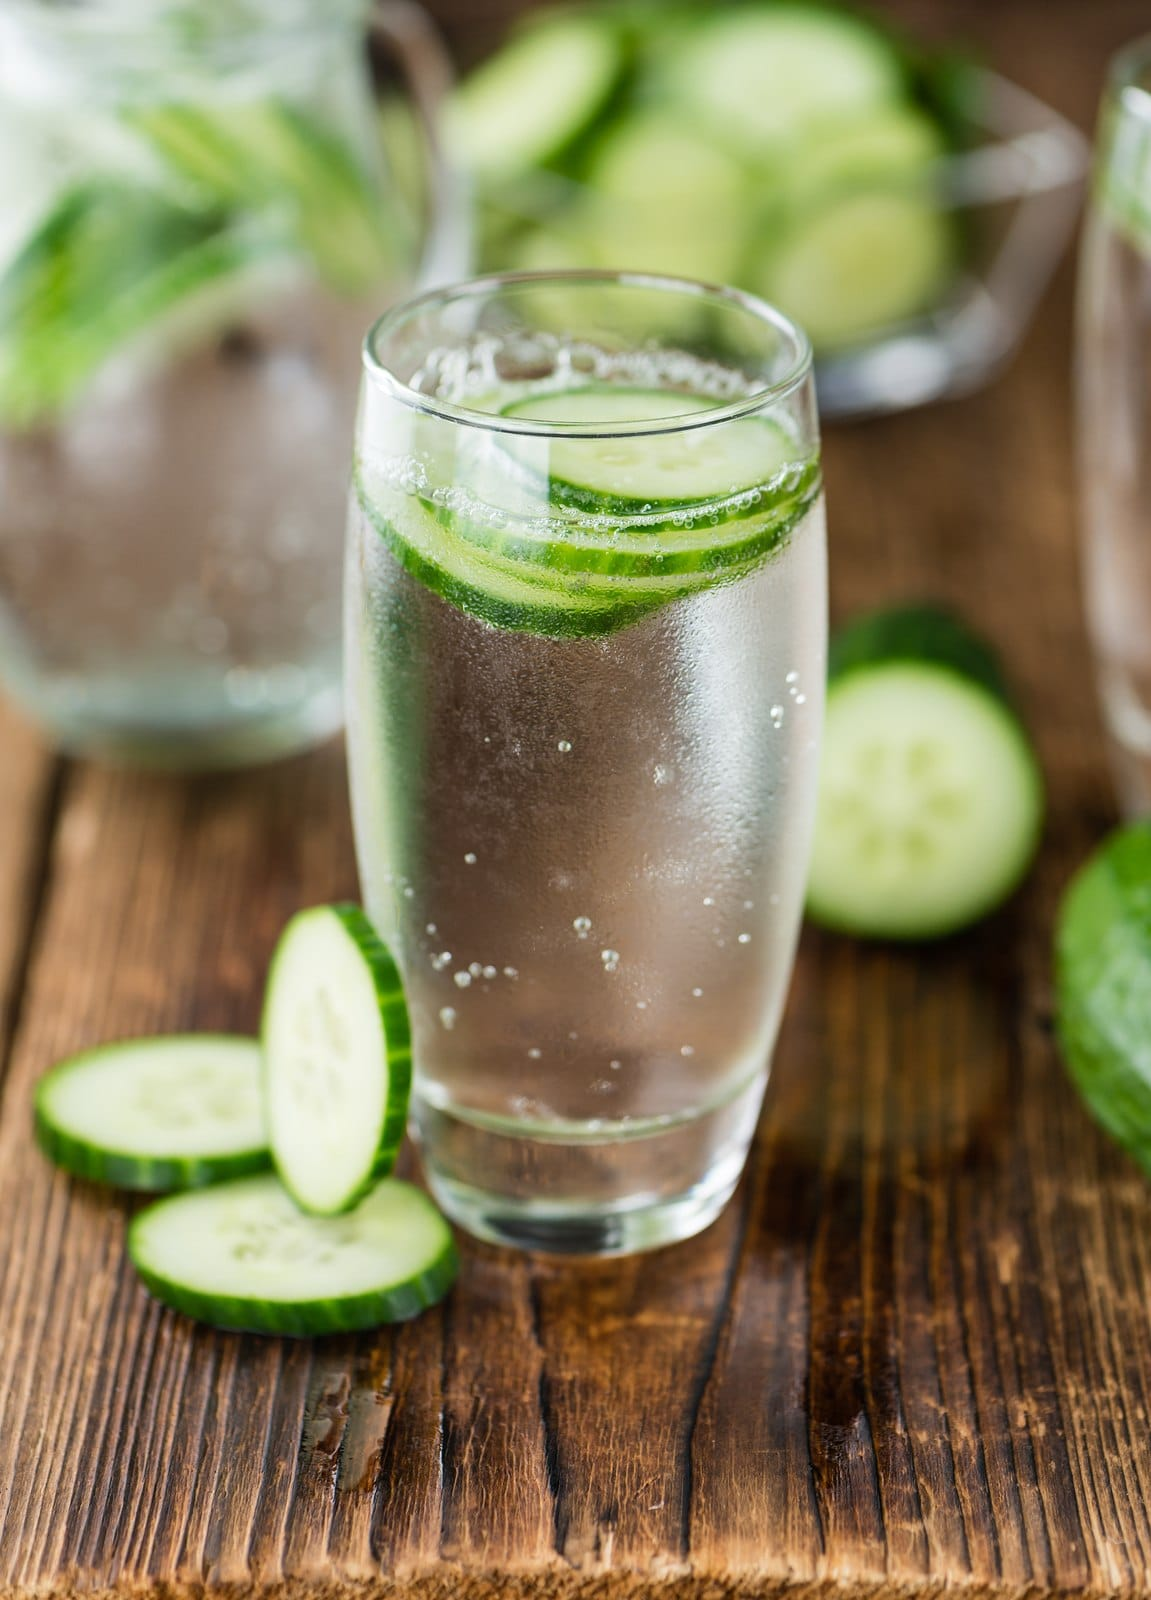 Cucumber water is easy to make at home and it does have health benefits. Here's why it's worth the extra effort.